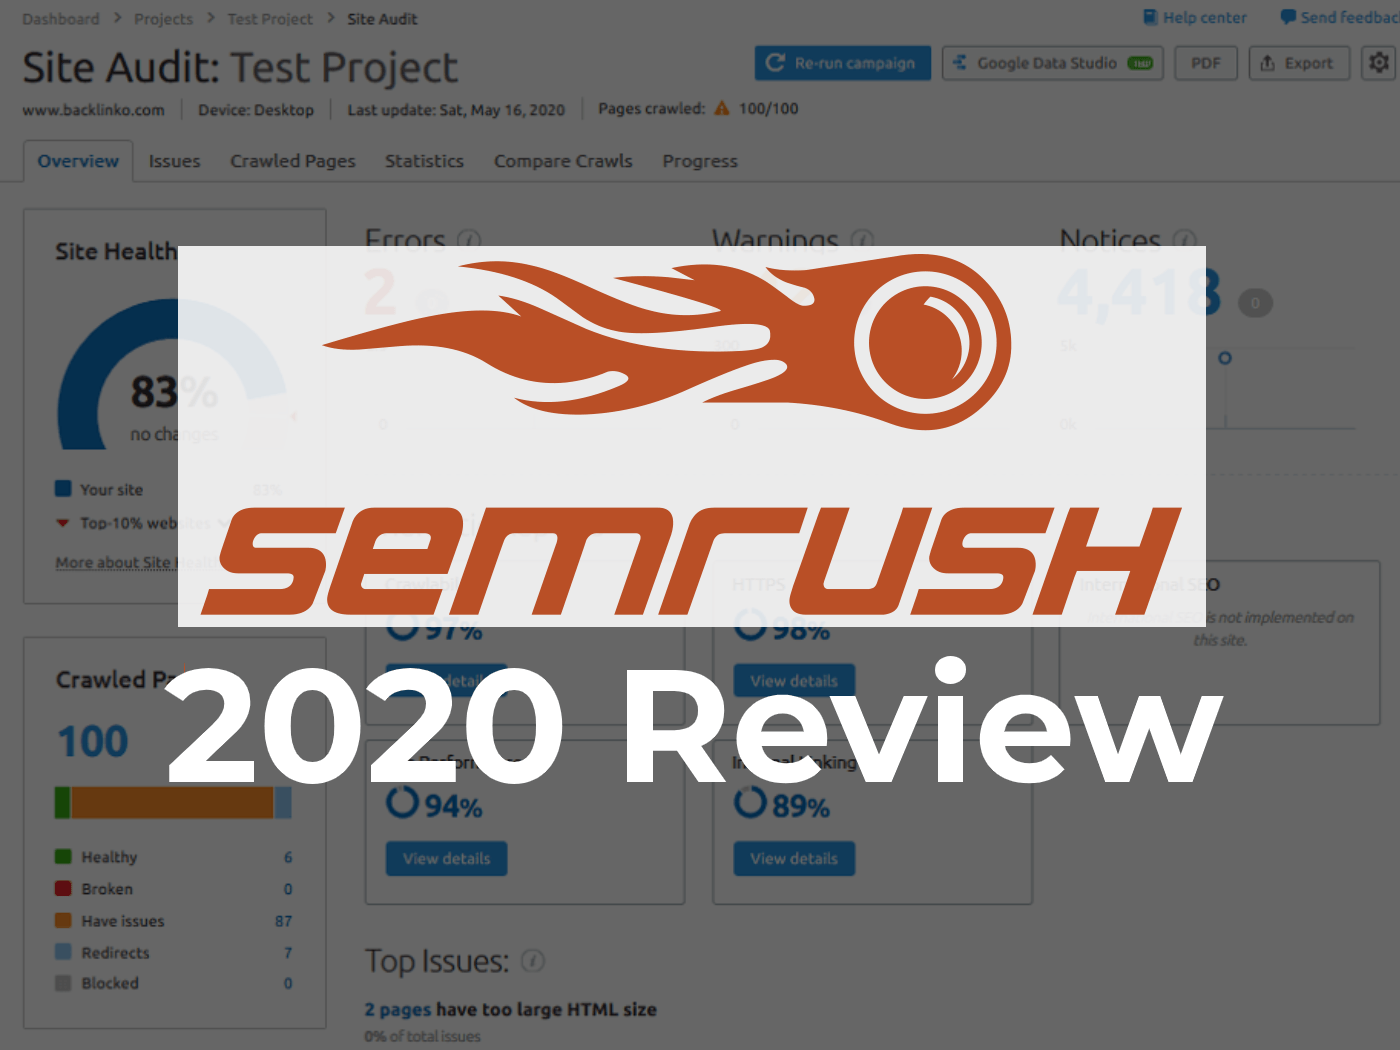 SEMRush Review 2020